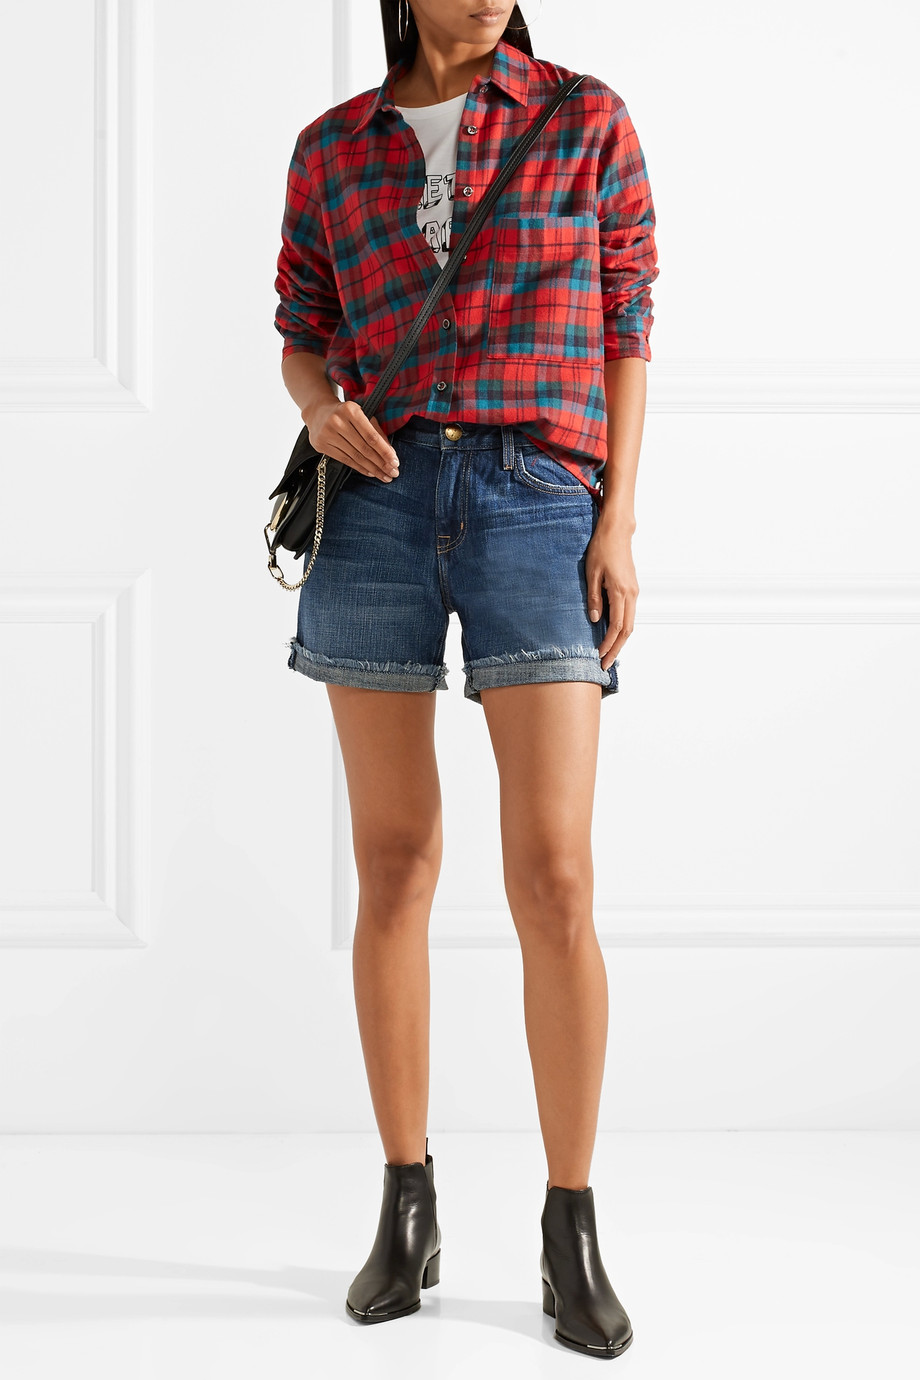 how to wear denim shorts